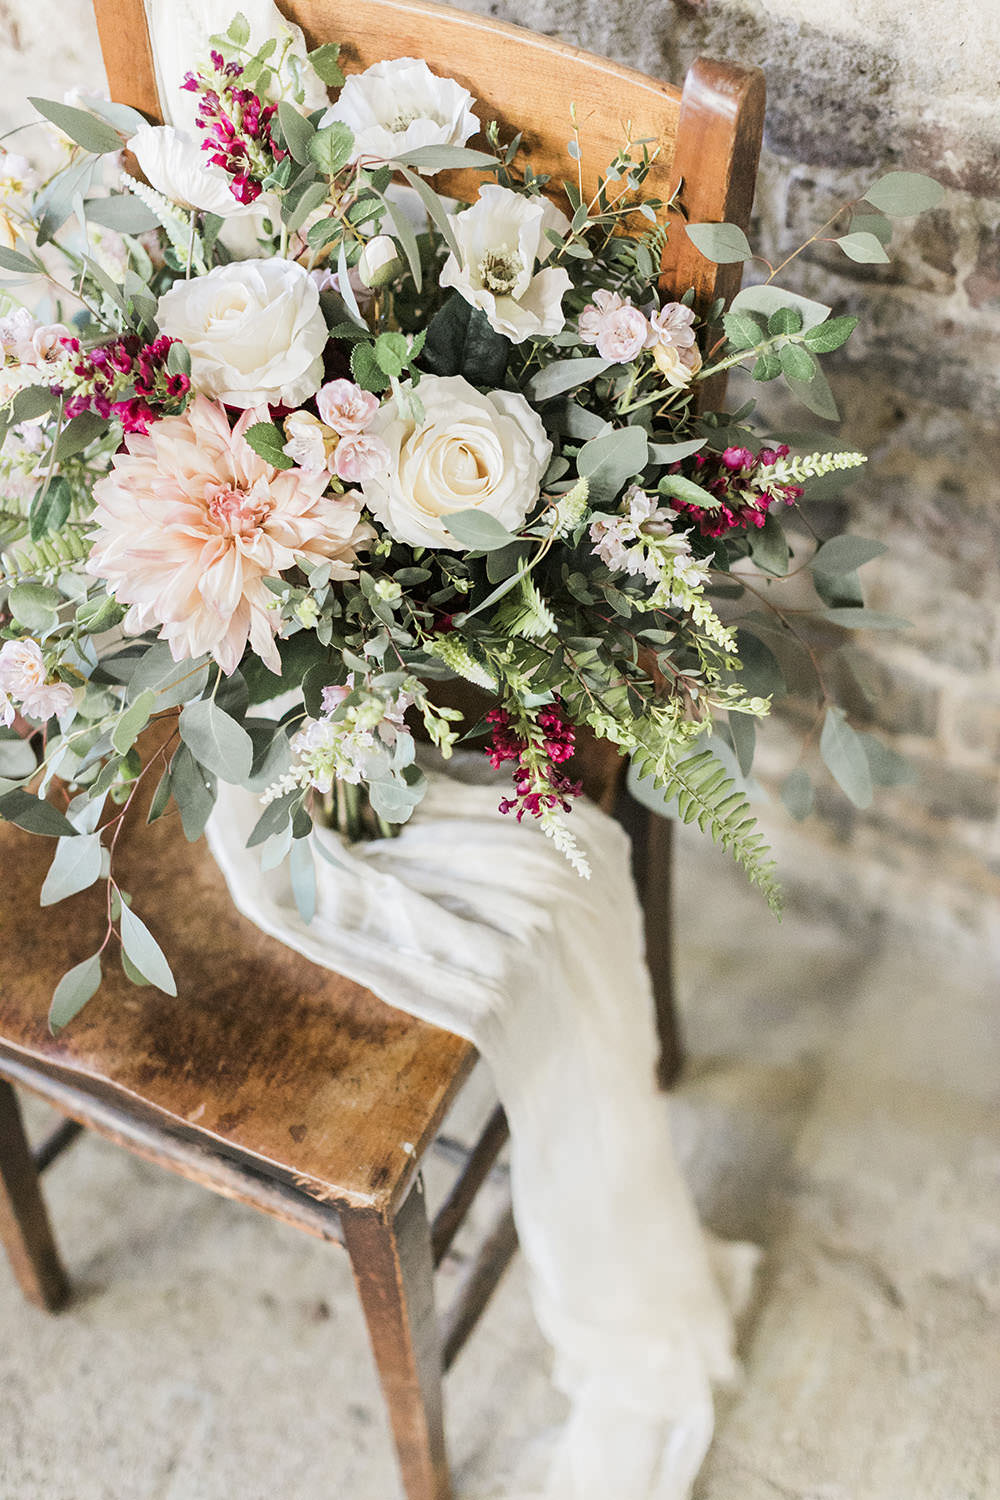 Bouquet Flowers Bride Bridal Greenery Foliage Rose Dahlia Fern Silk Ribbon Burgundy Gold Wedding Ideas Sarah Porter Photography